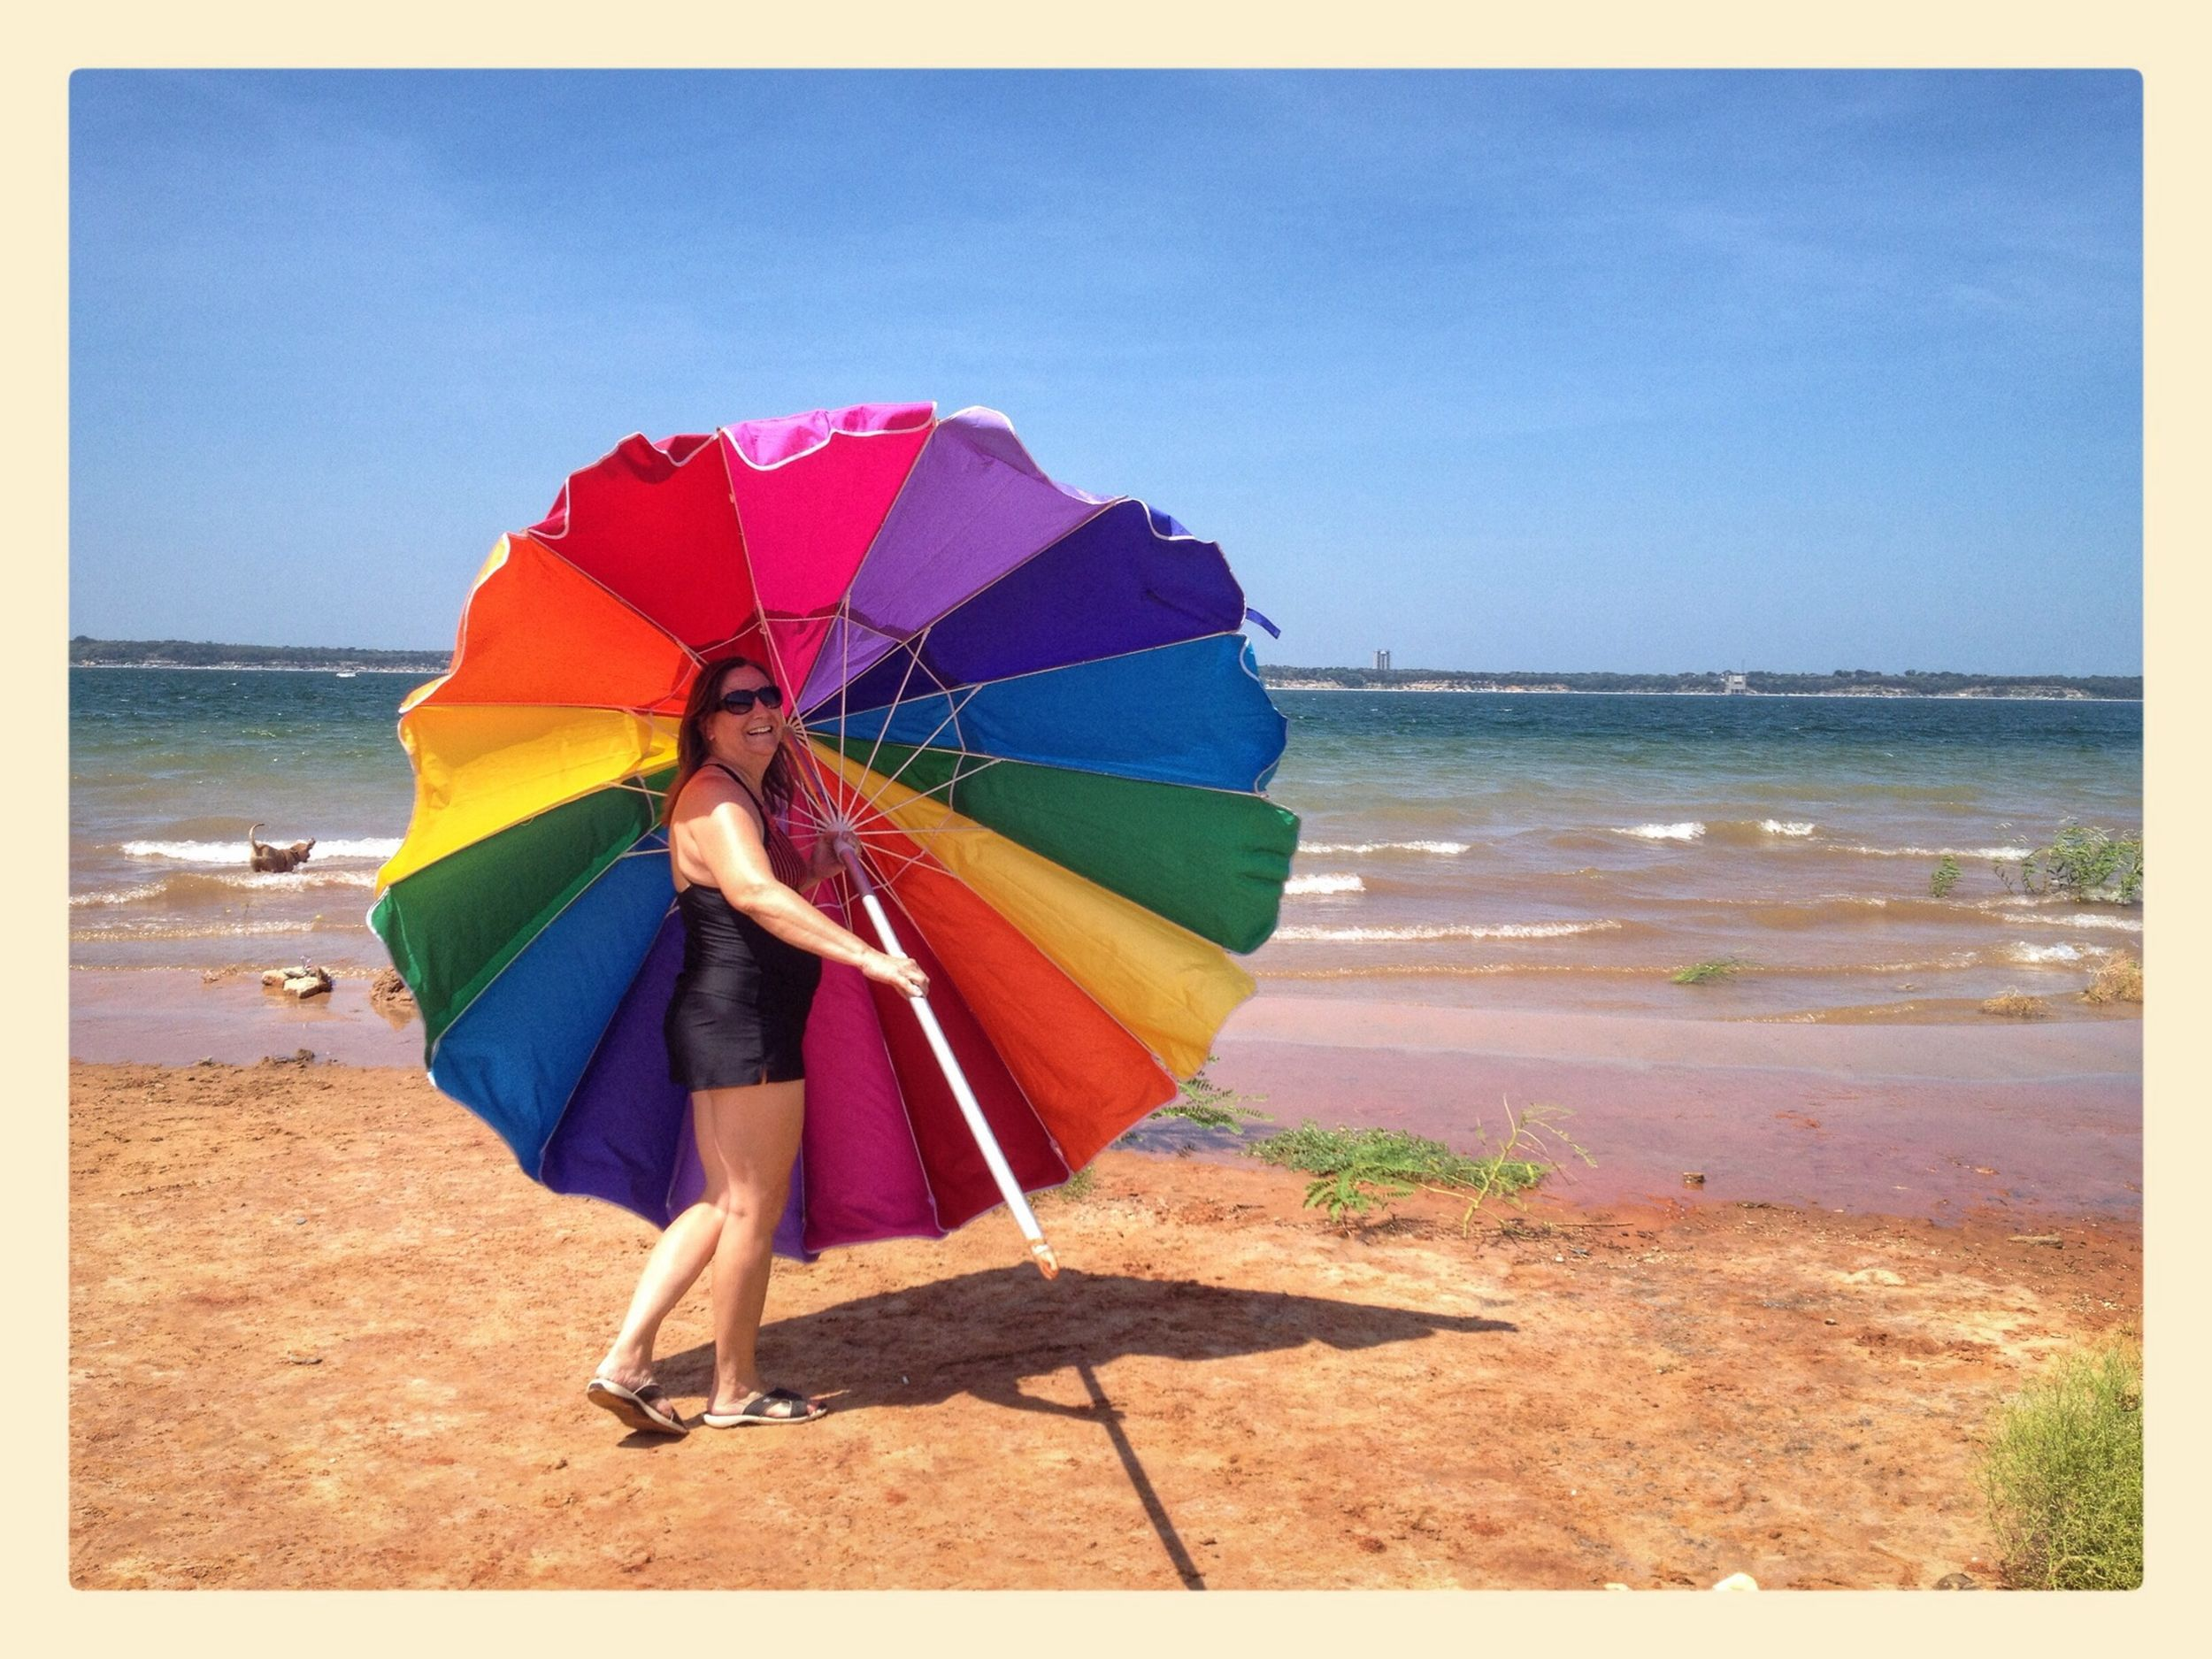 Cousin saving the Umbrella on a Windy Day at the Beach